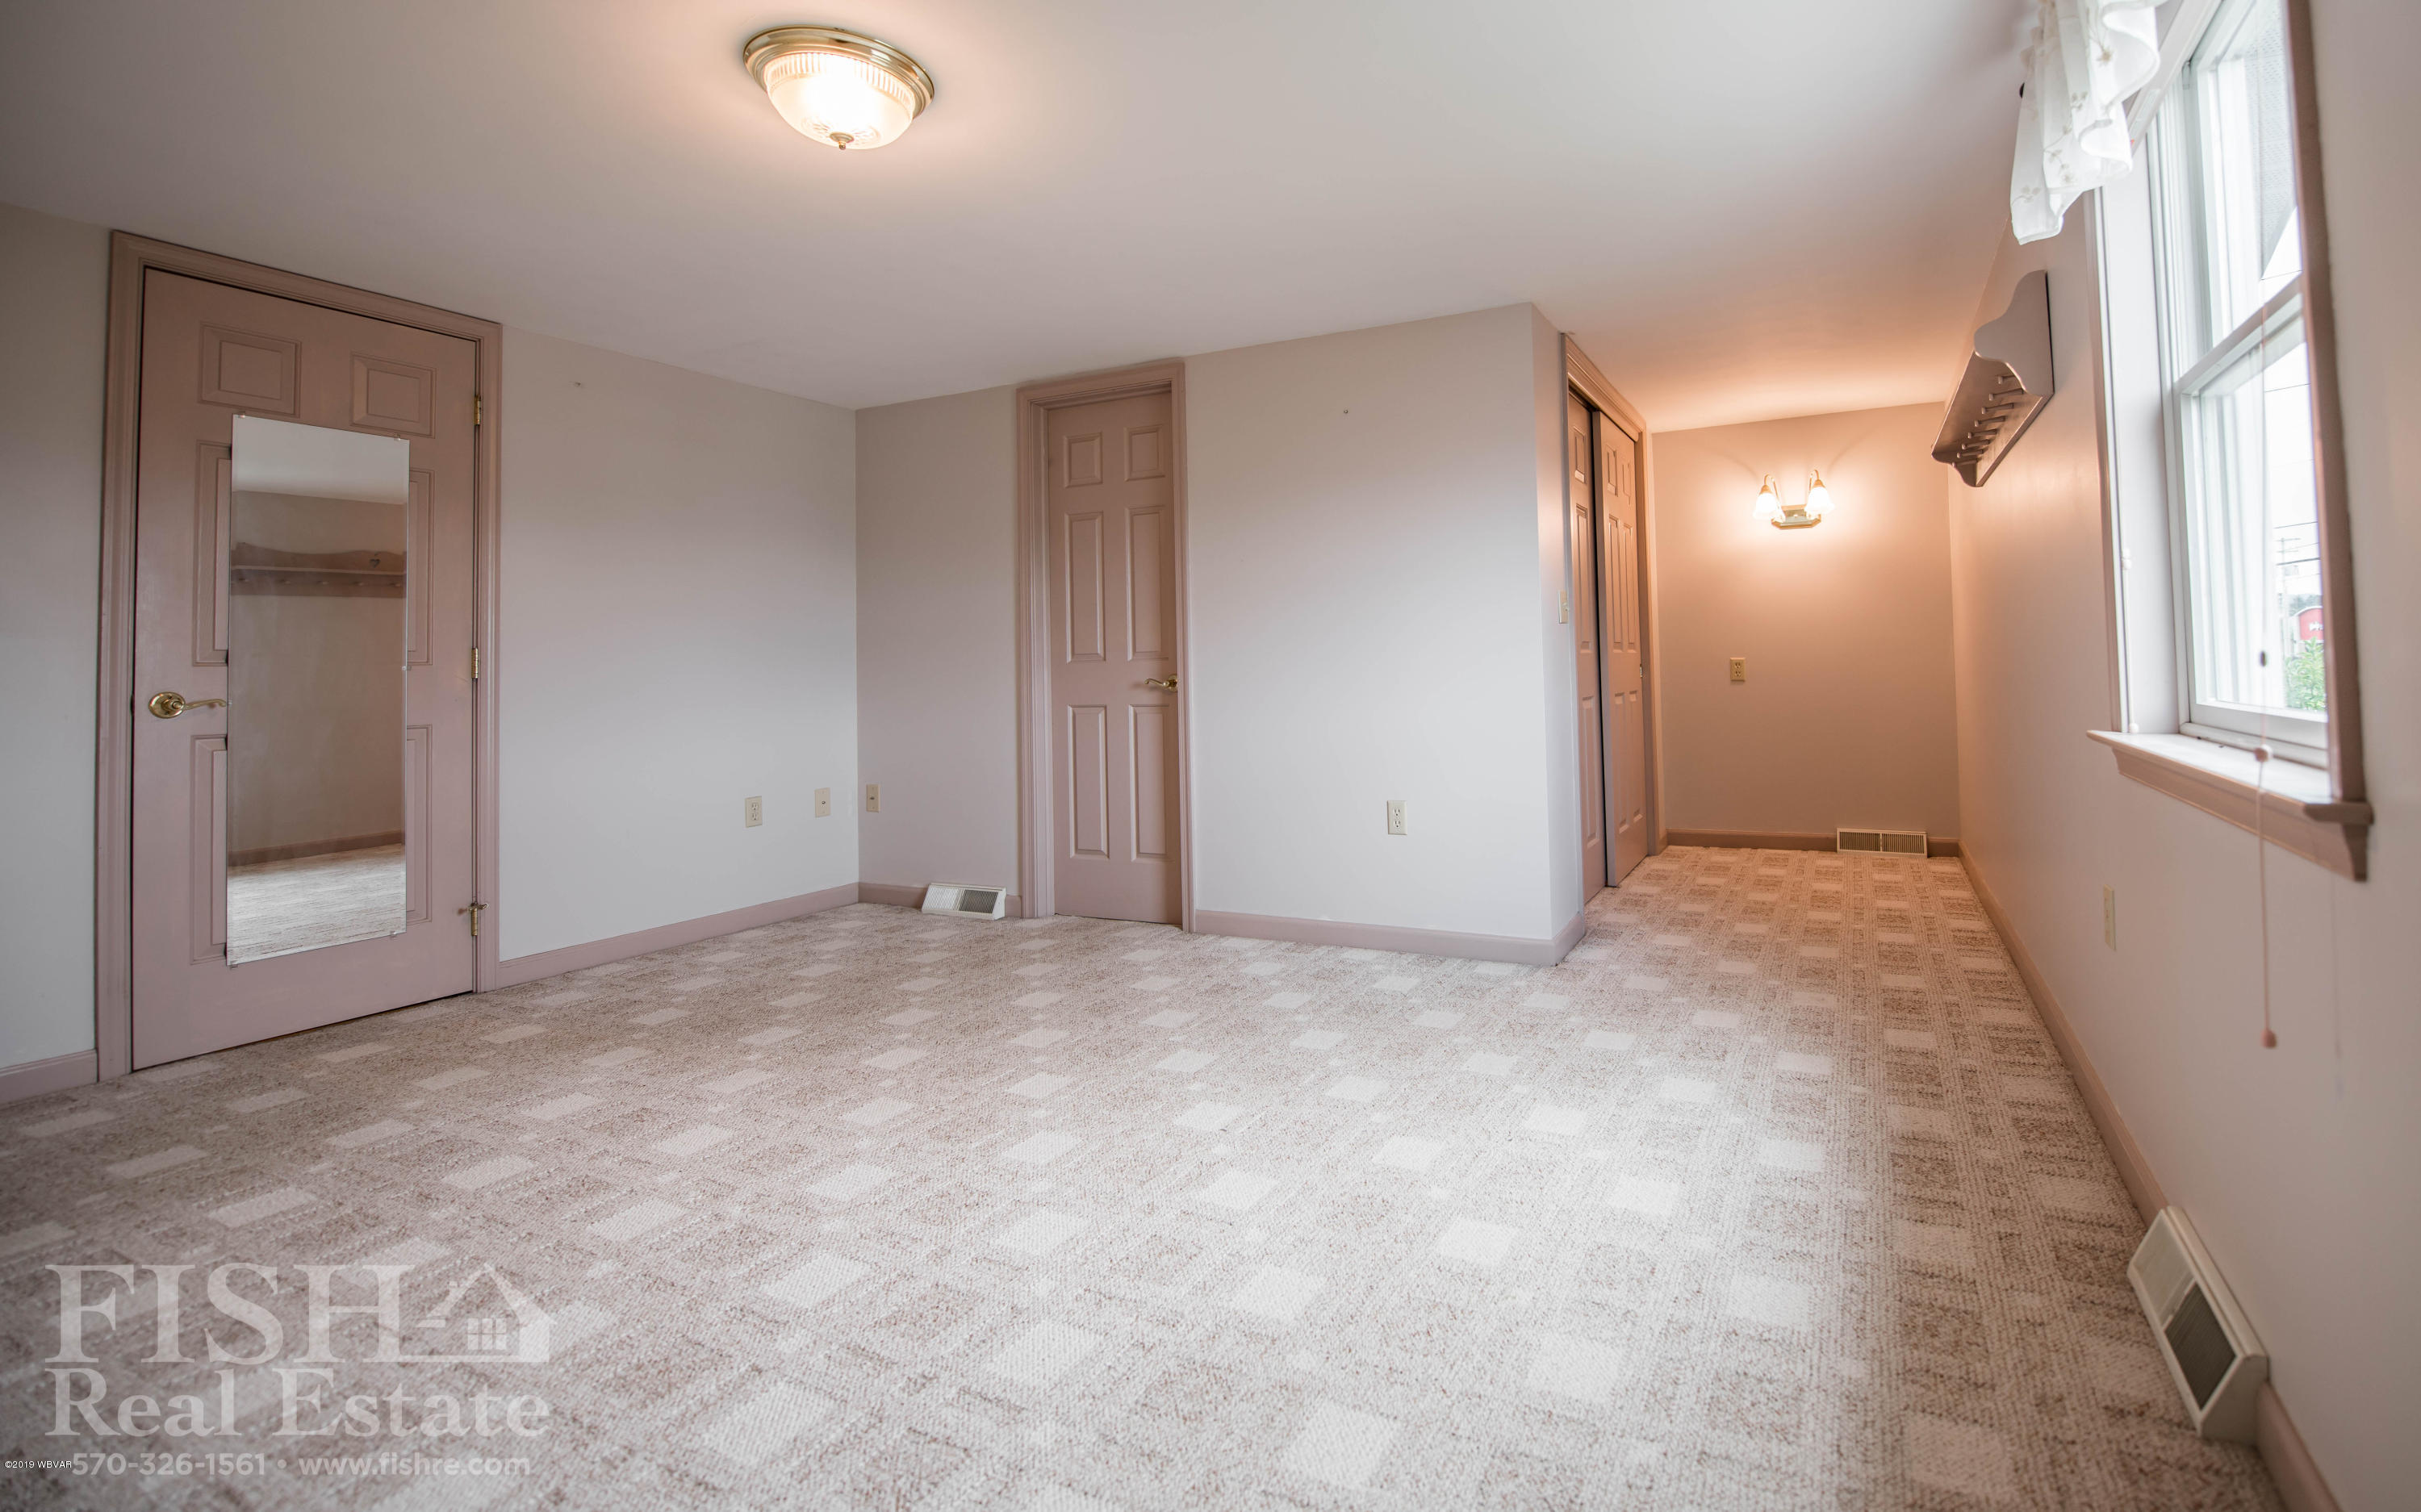 50 GRIFFITH ROAD,Muncy,PA 17756,4 BathroomsBathrooms,Commercial sales,GRIFFITH,WB-88215